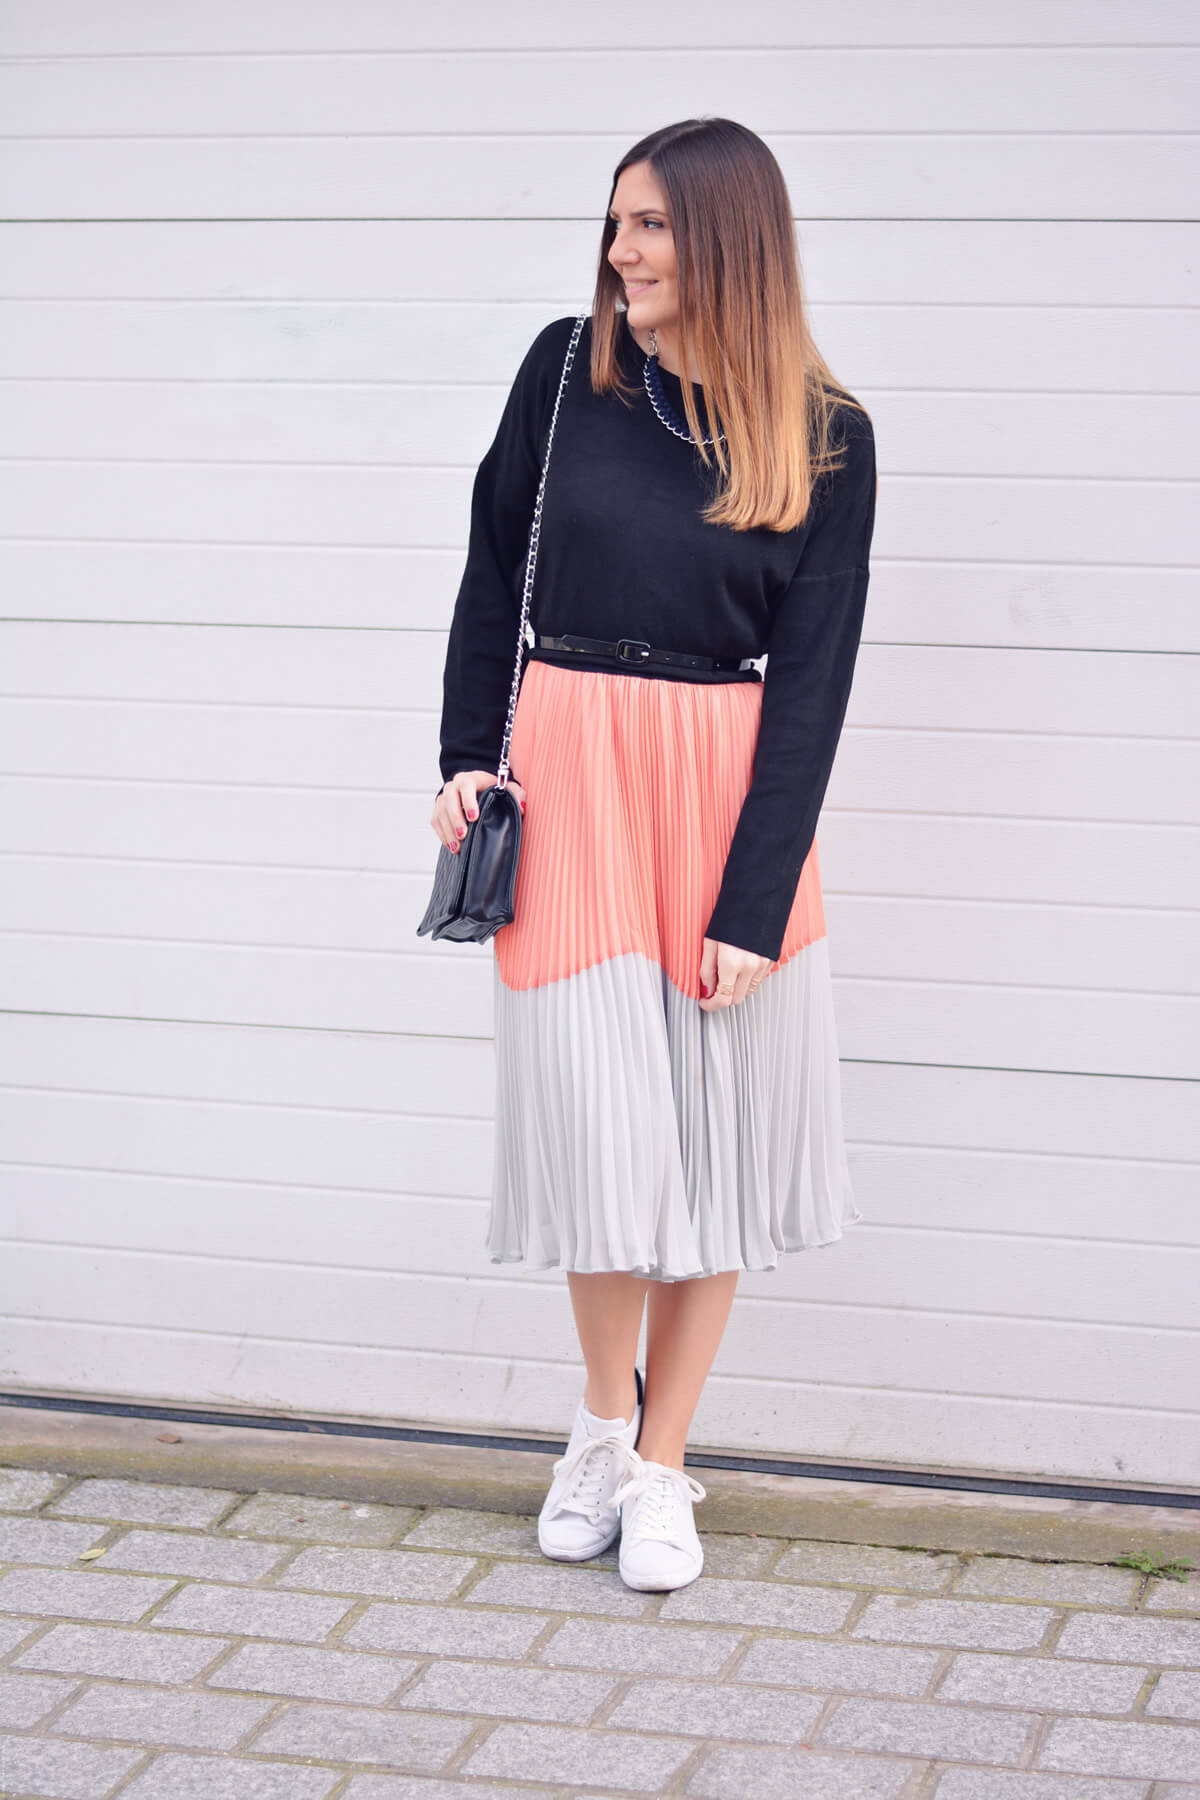 look-tendance-printemps-jupe-plissee-les-caprices-diris-blog-mode-paris